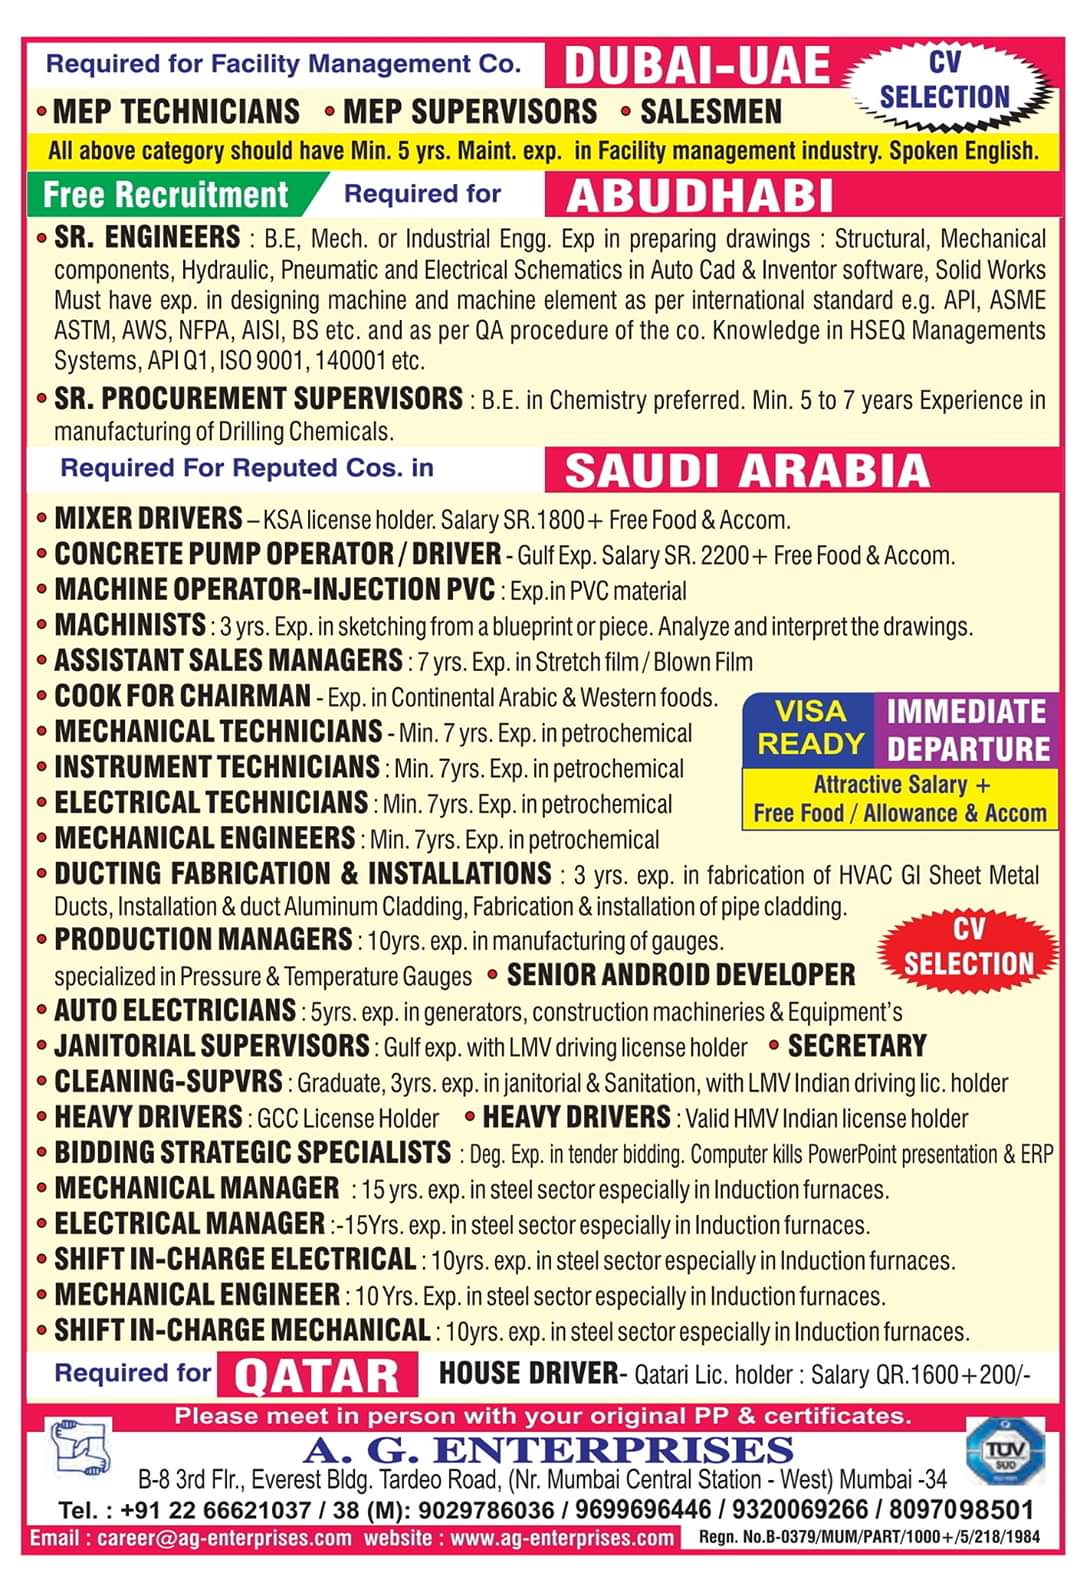 JOB OPENINGS IN GULF COUNTRIES